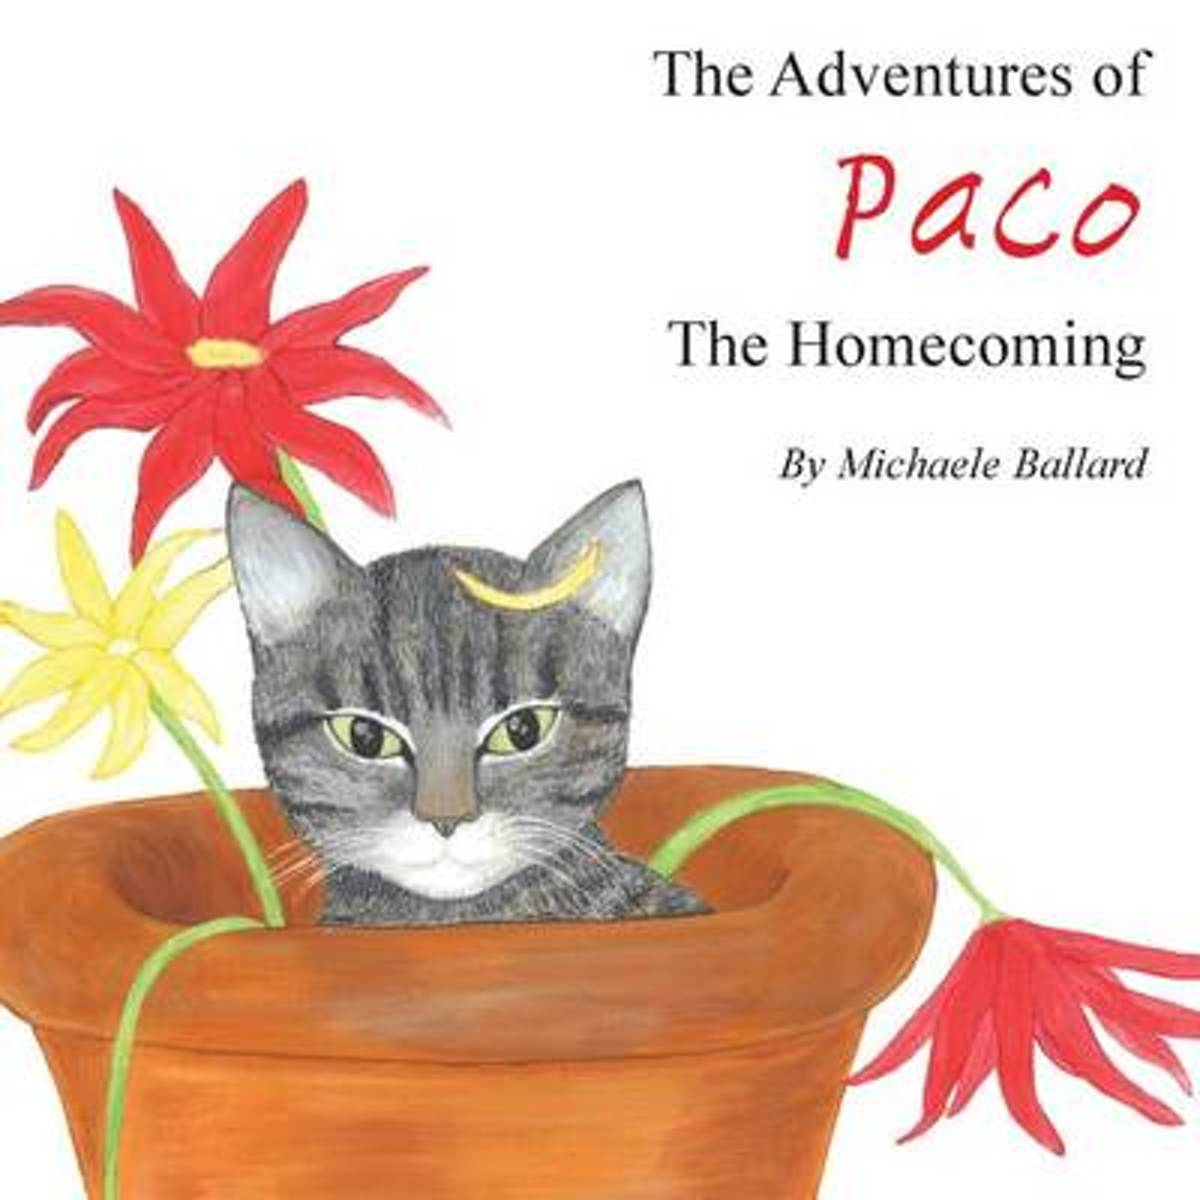 The Adventures of Paco